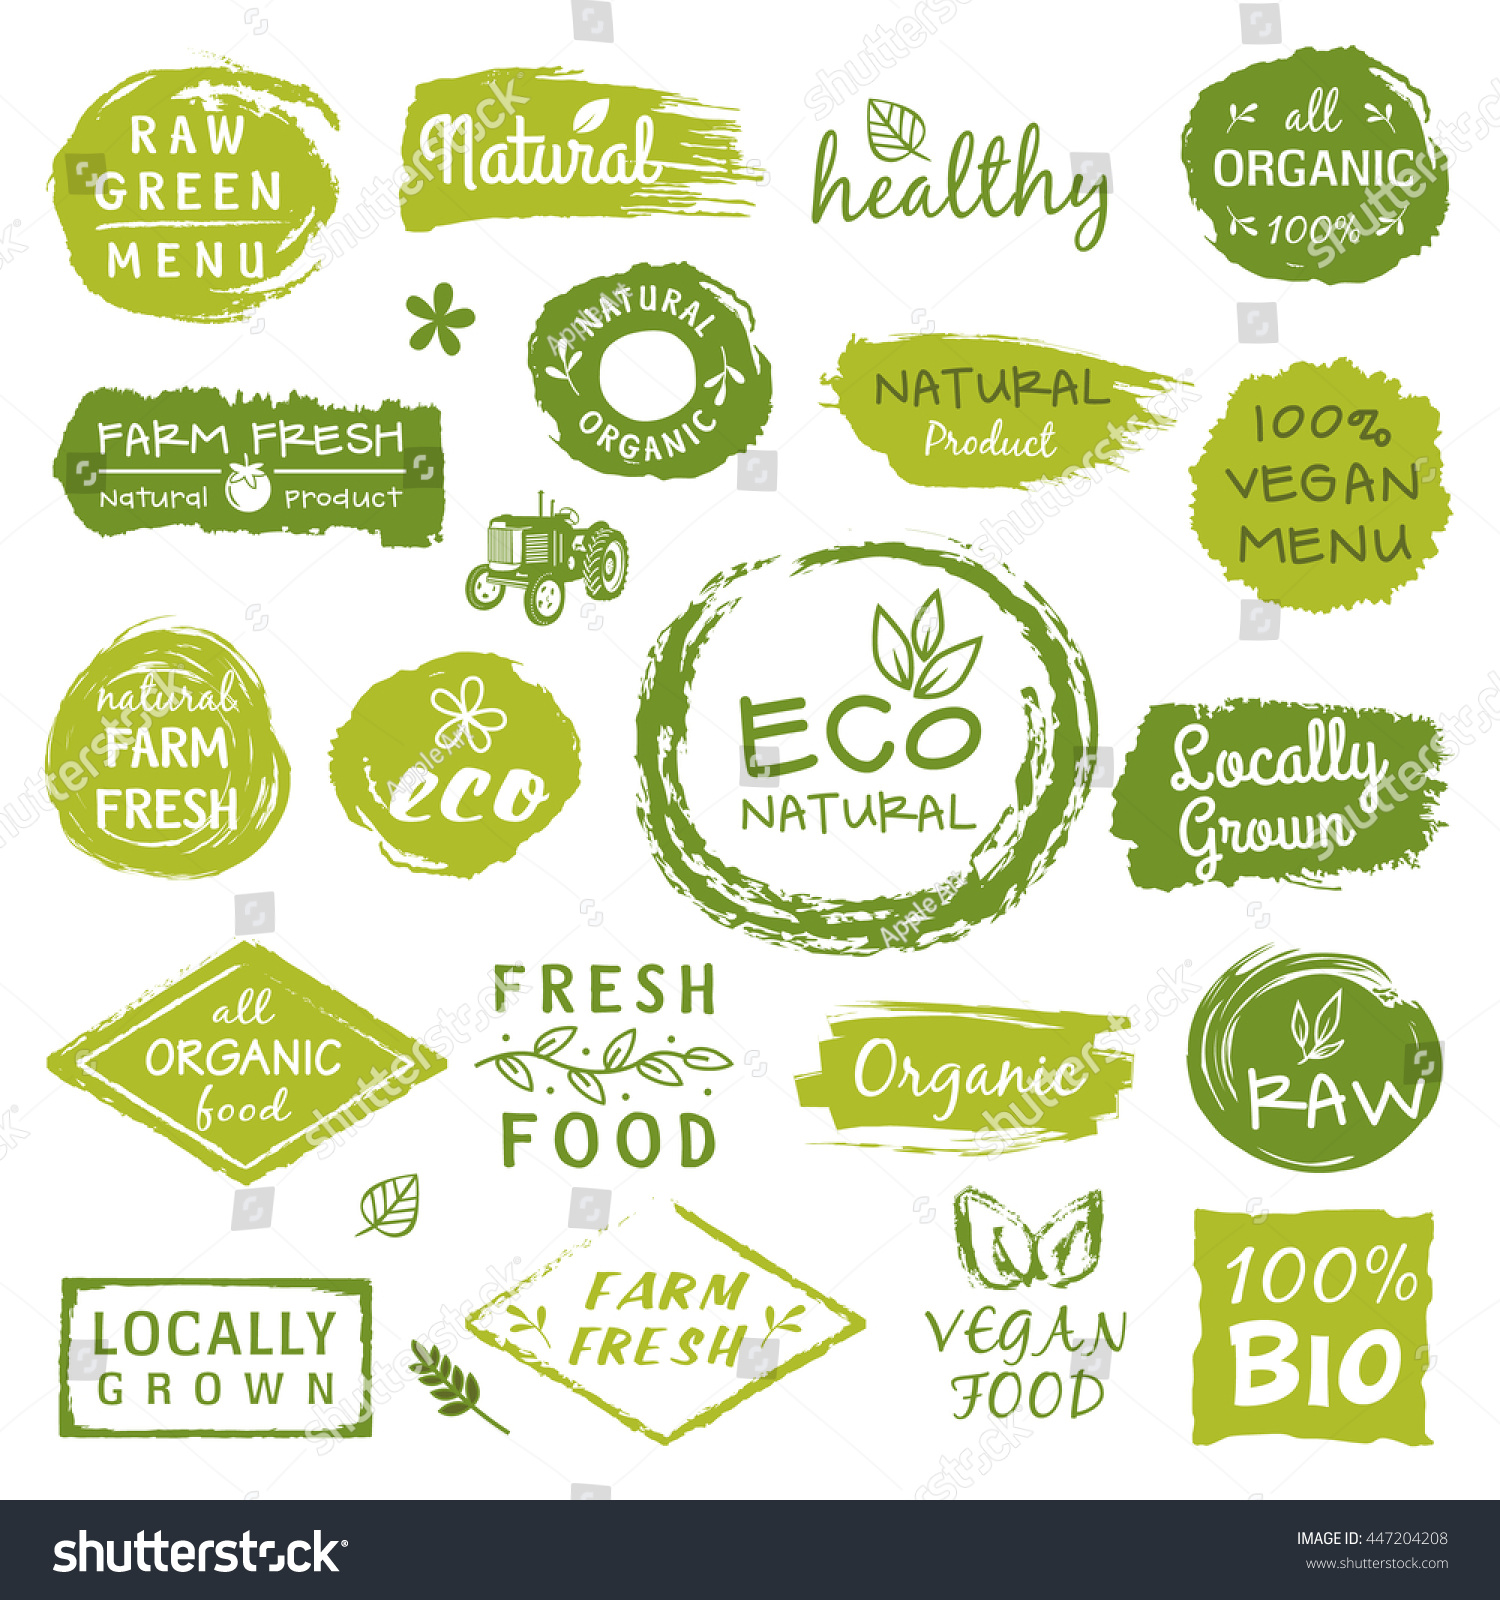 Organic Food Products Healthy: Collection Healthy Organic Food Labels Logos Stock Vector